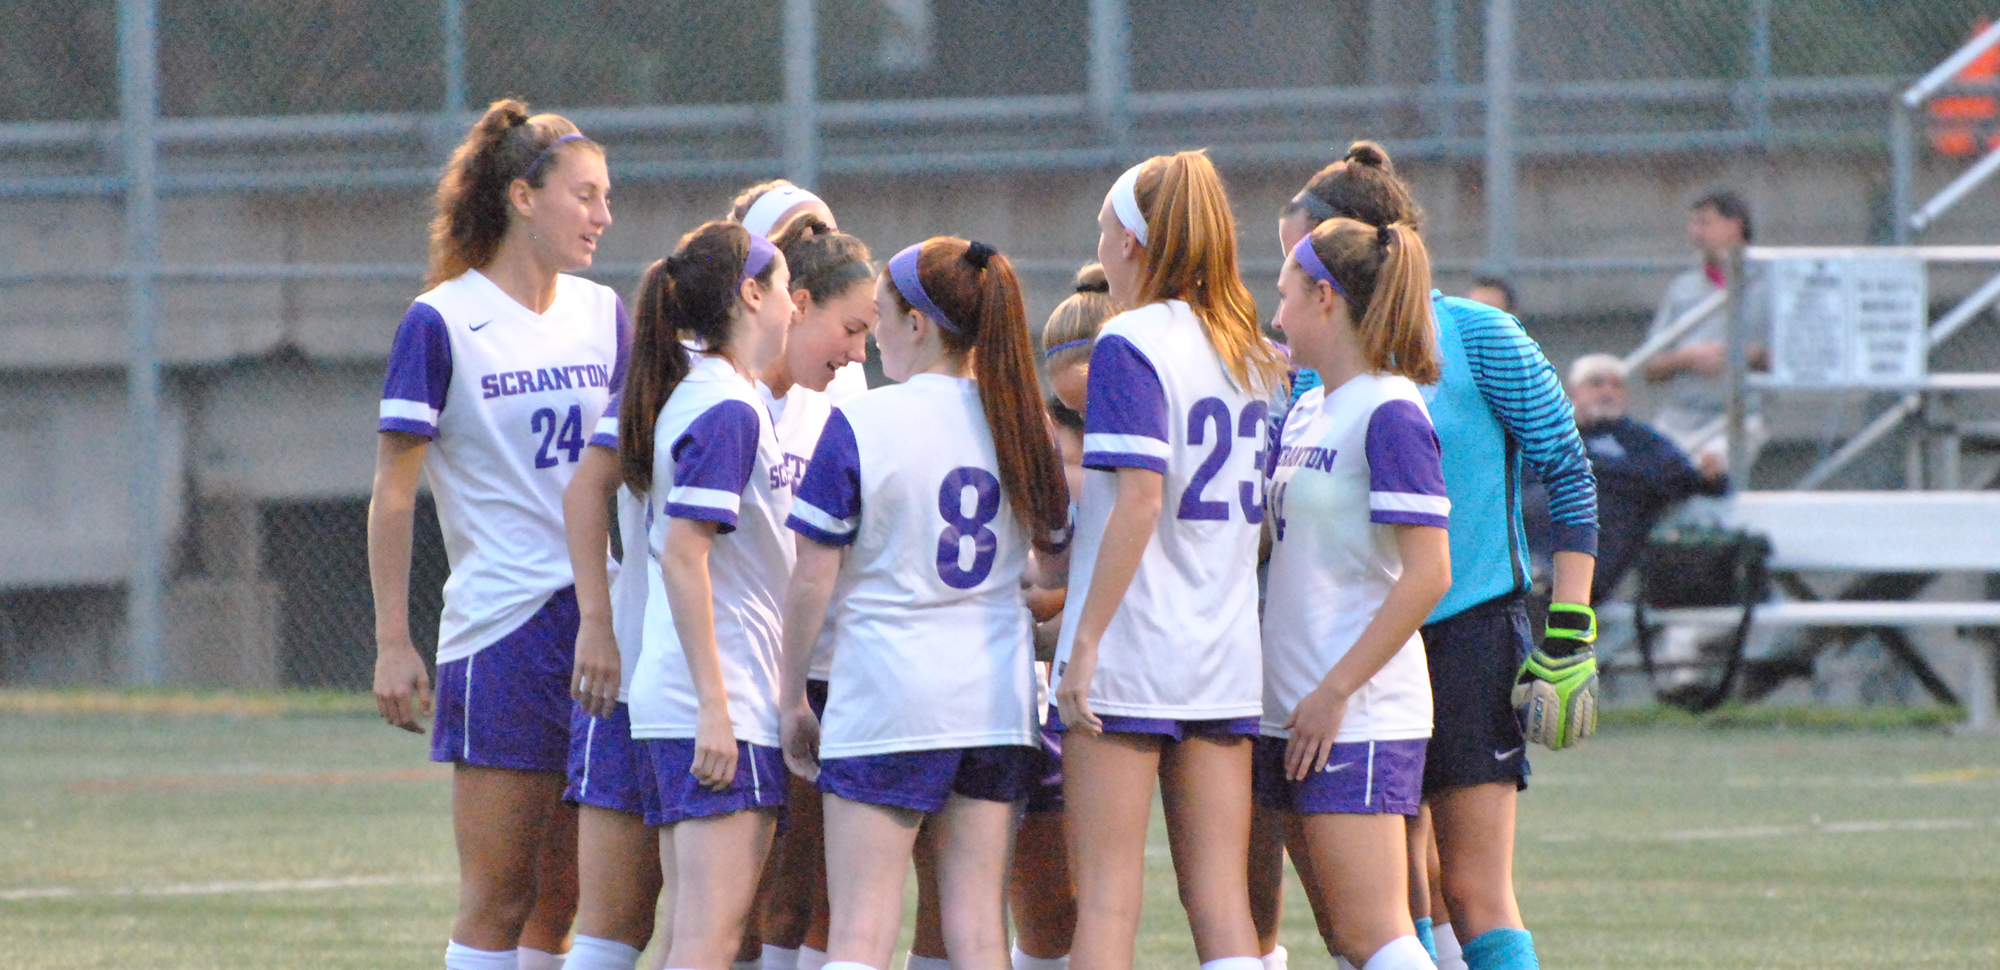 The women's soccer team battled NYU to a scoreless draw on Tuesday night.